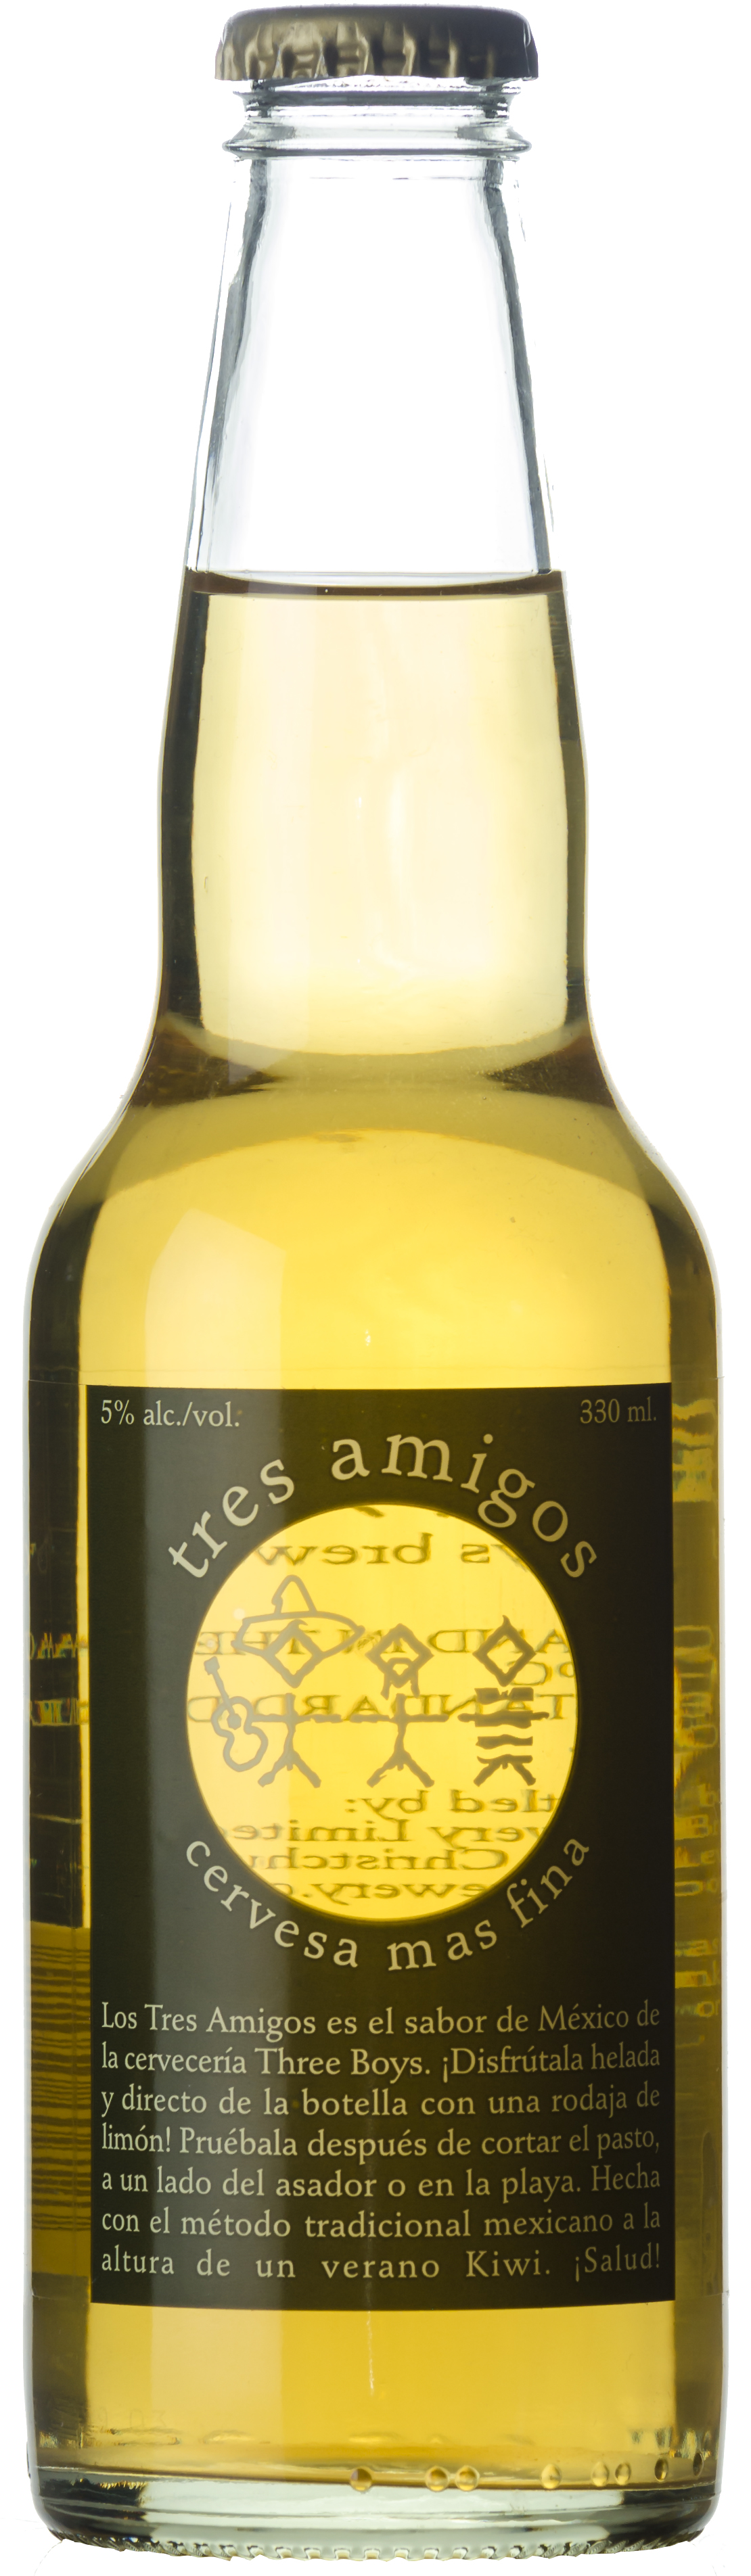 Tres Amigos bottle - no shadow.jpg